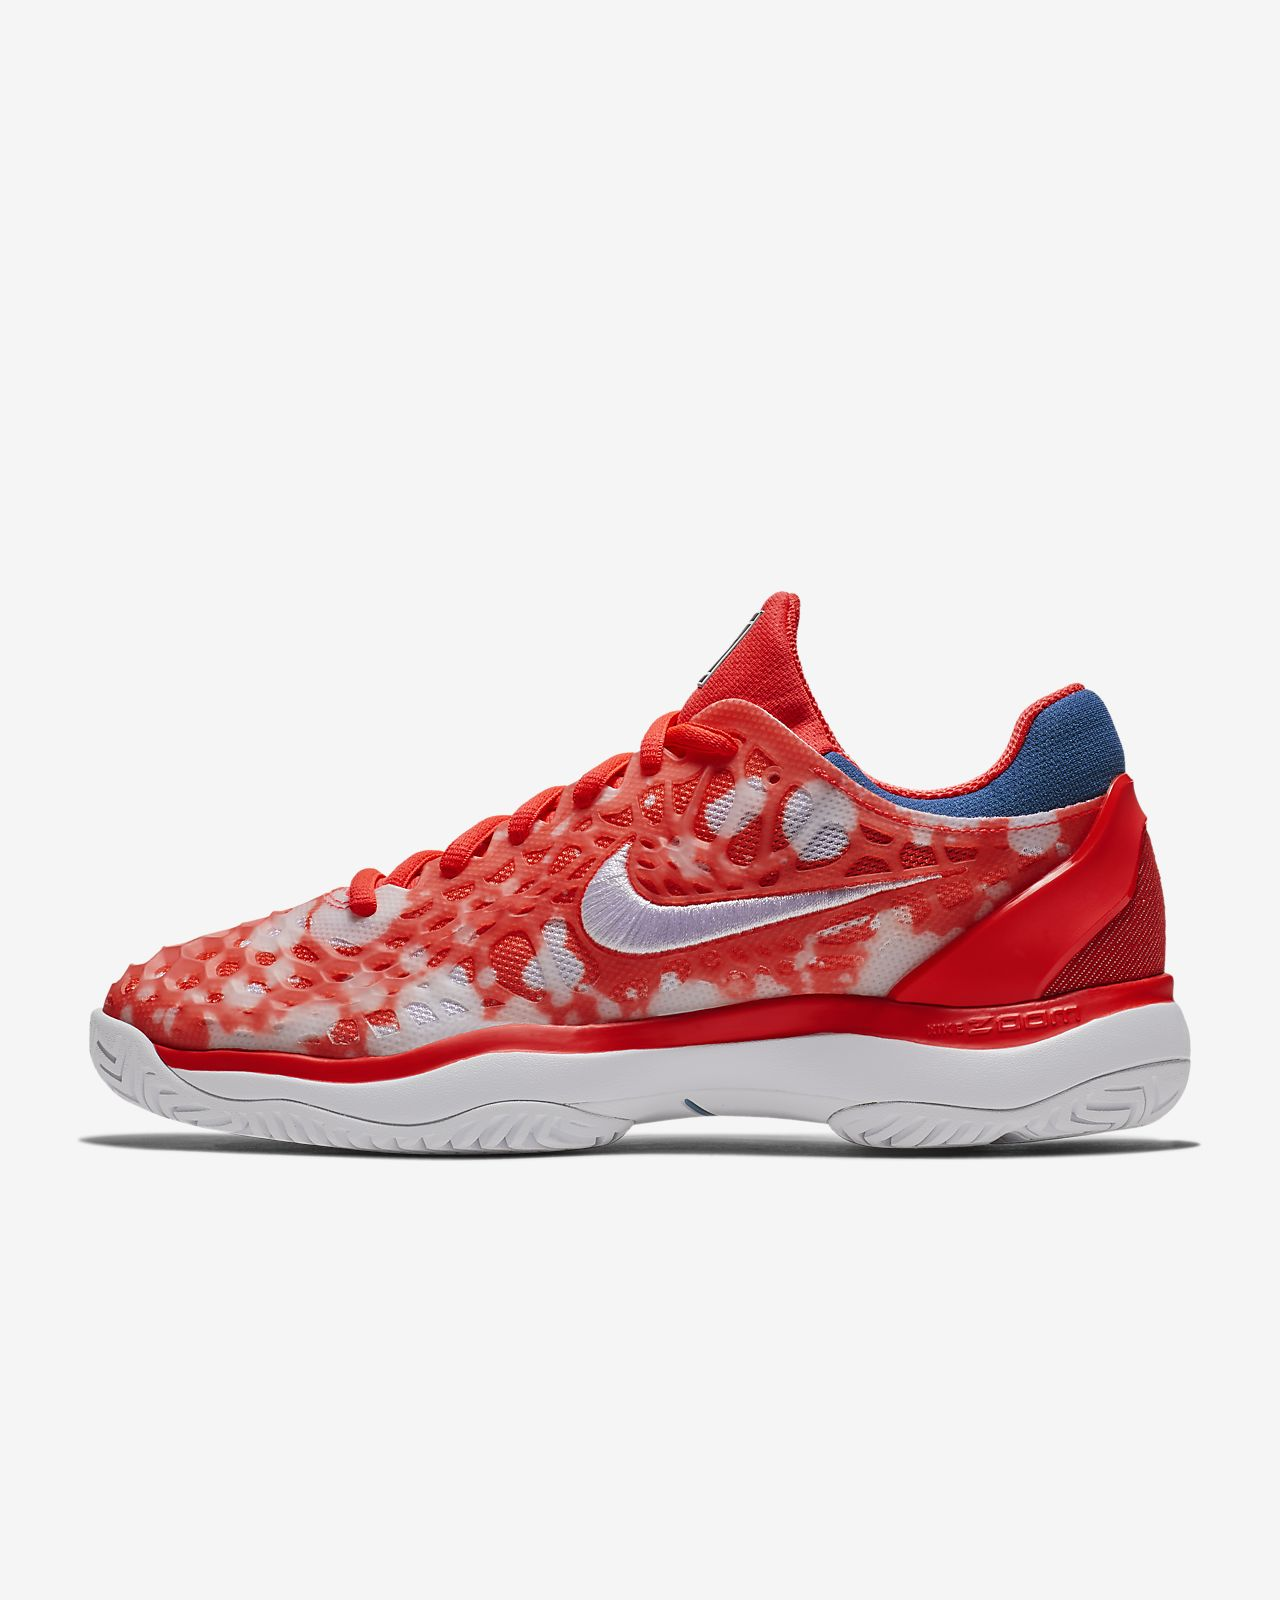 255e62938262 NikeCourt Air Zoom Cage 3 Premium Women s Tennis Shoe. Nike.com NZ